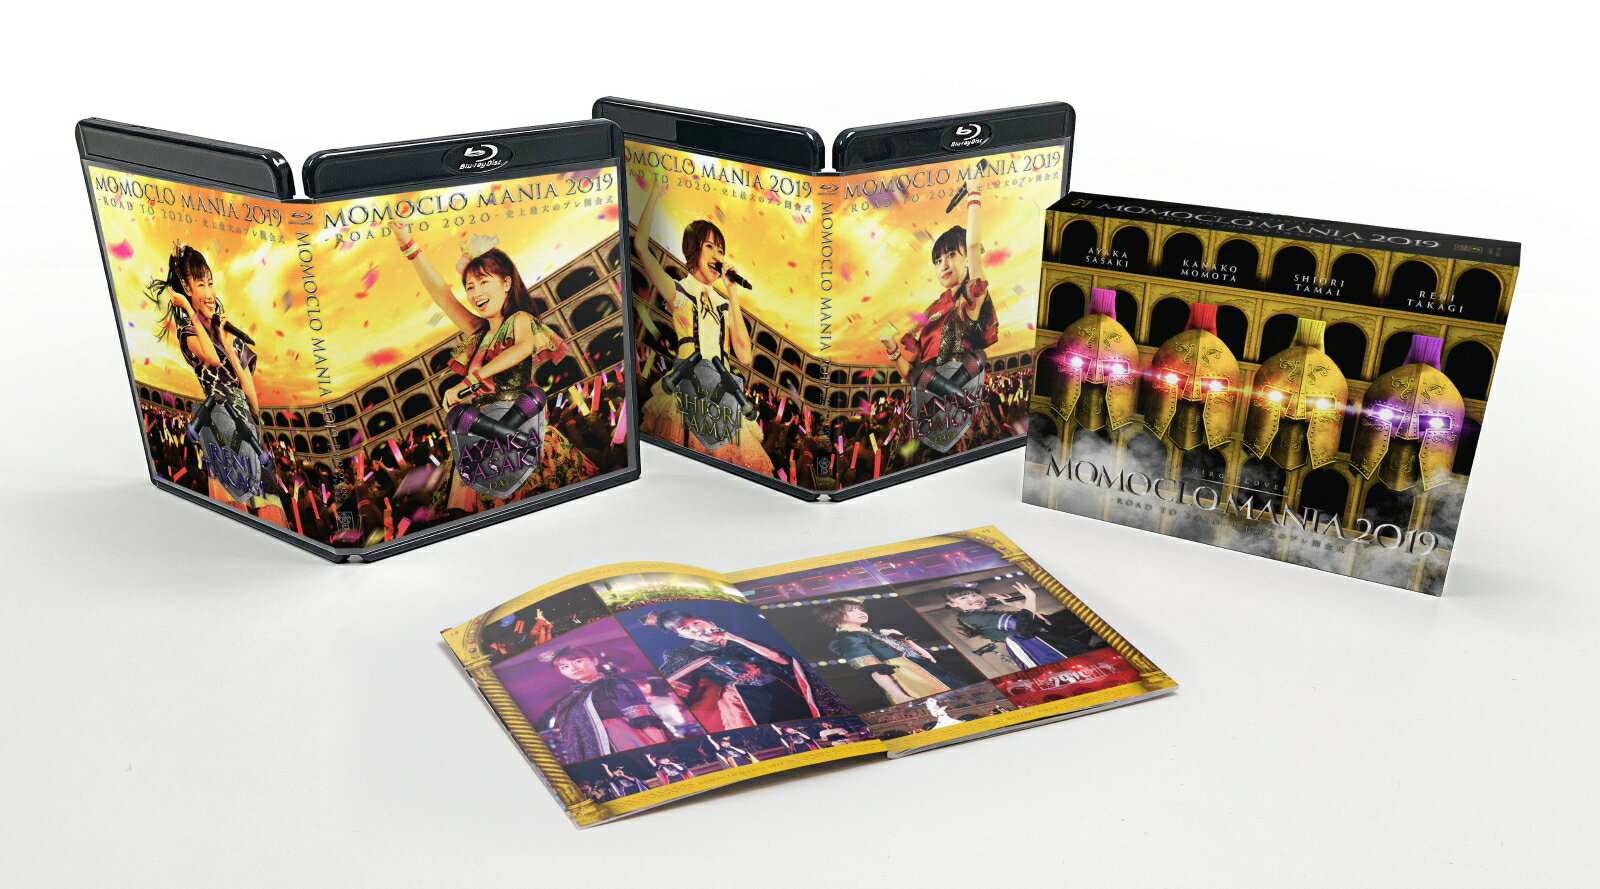 MOMOCLO MANIA 2019 ROAD TO 2020 史上最大のプレ開会式 LIVE DVD